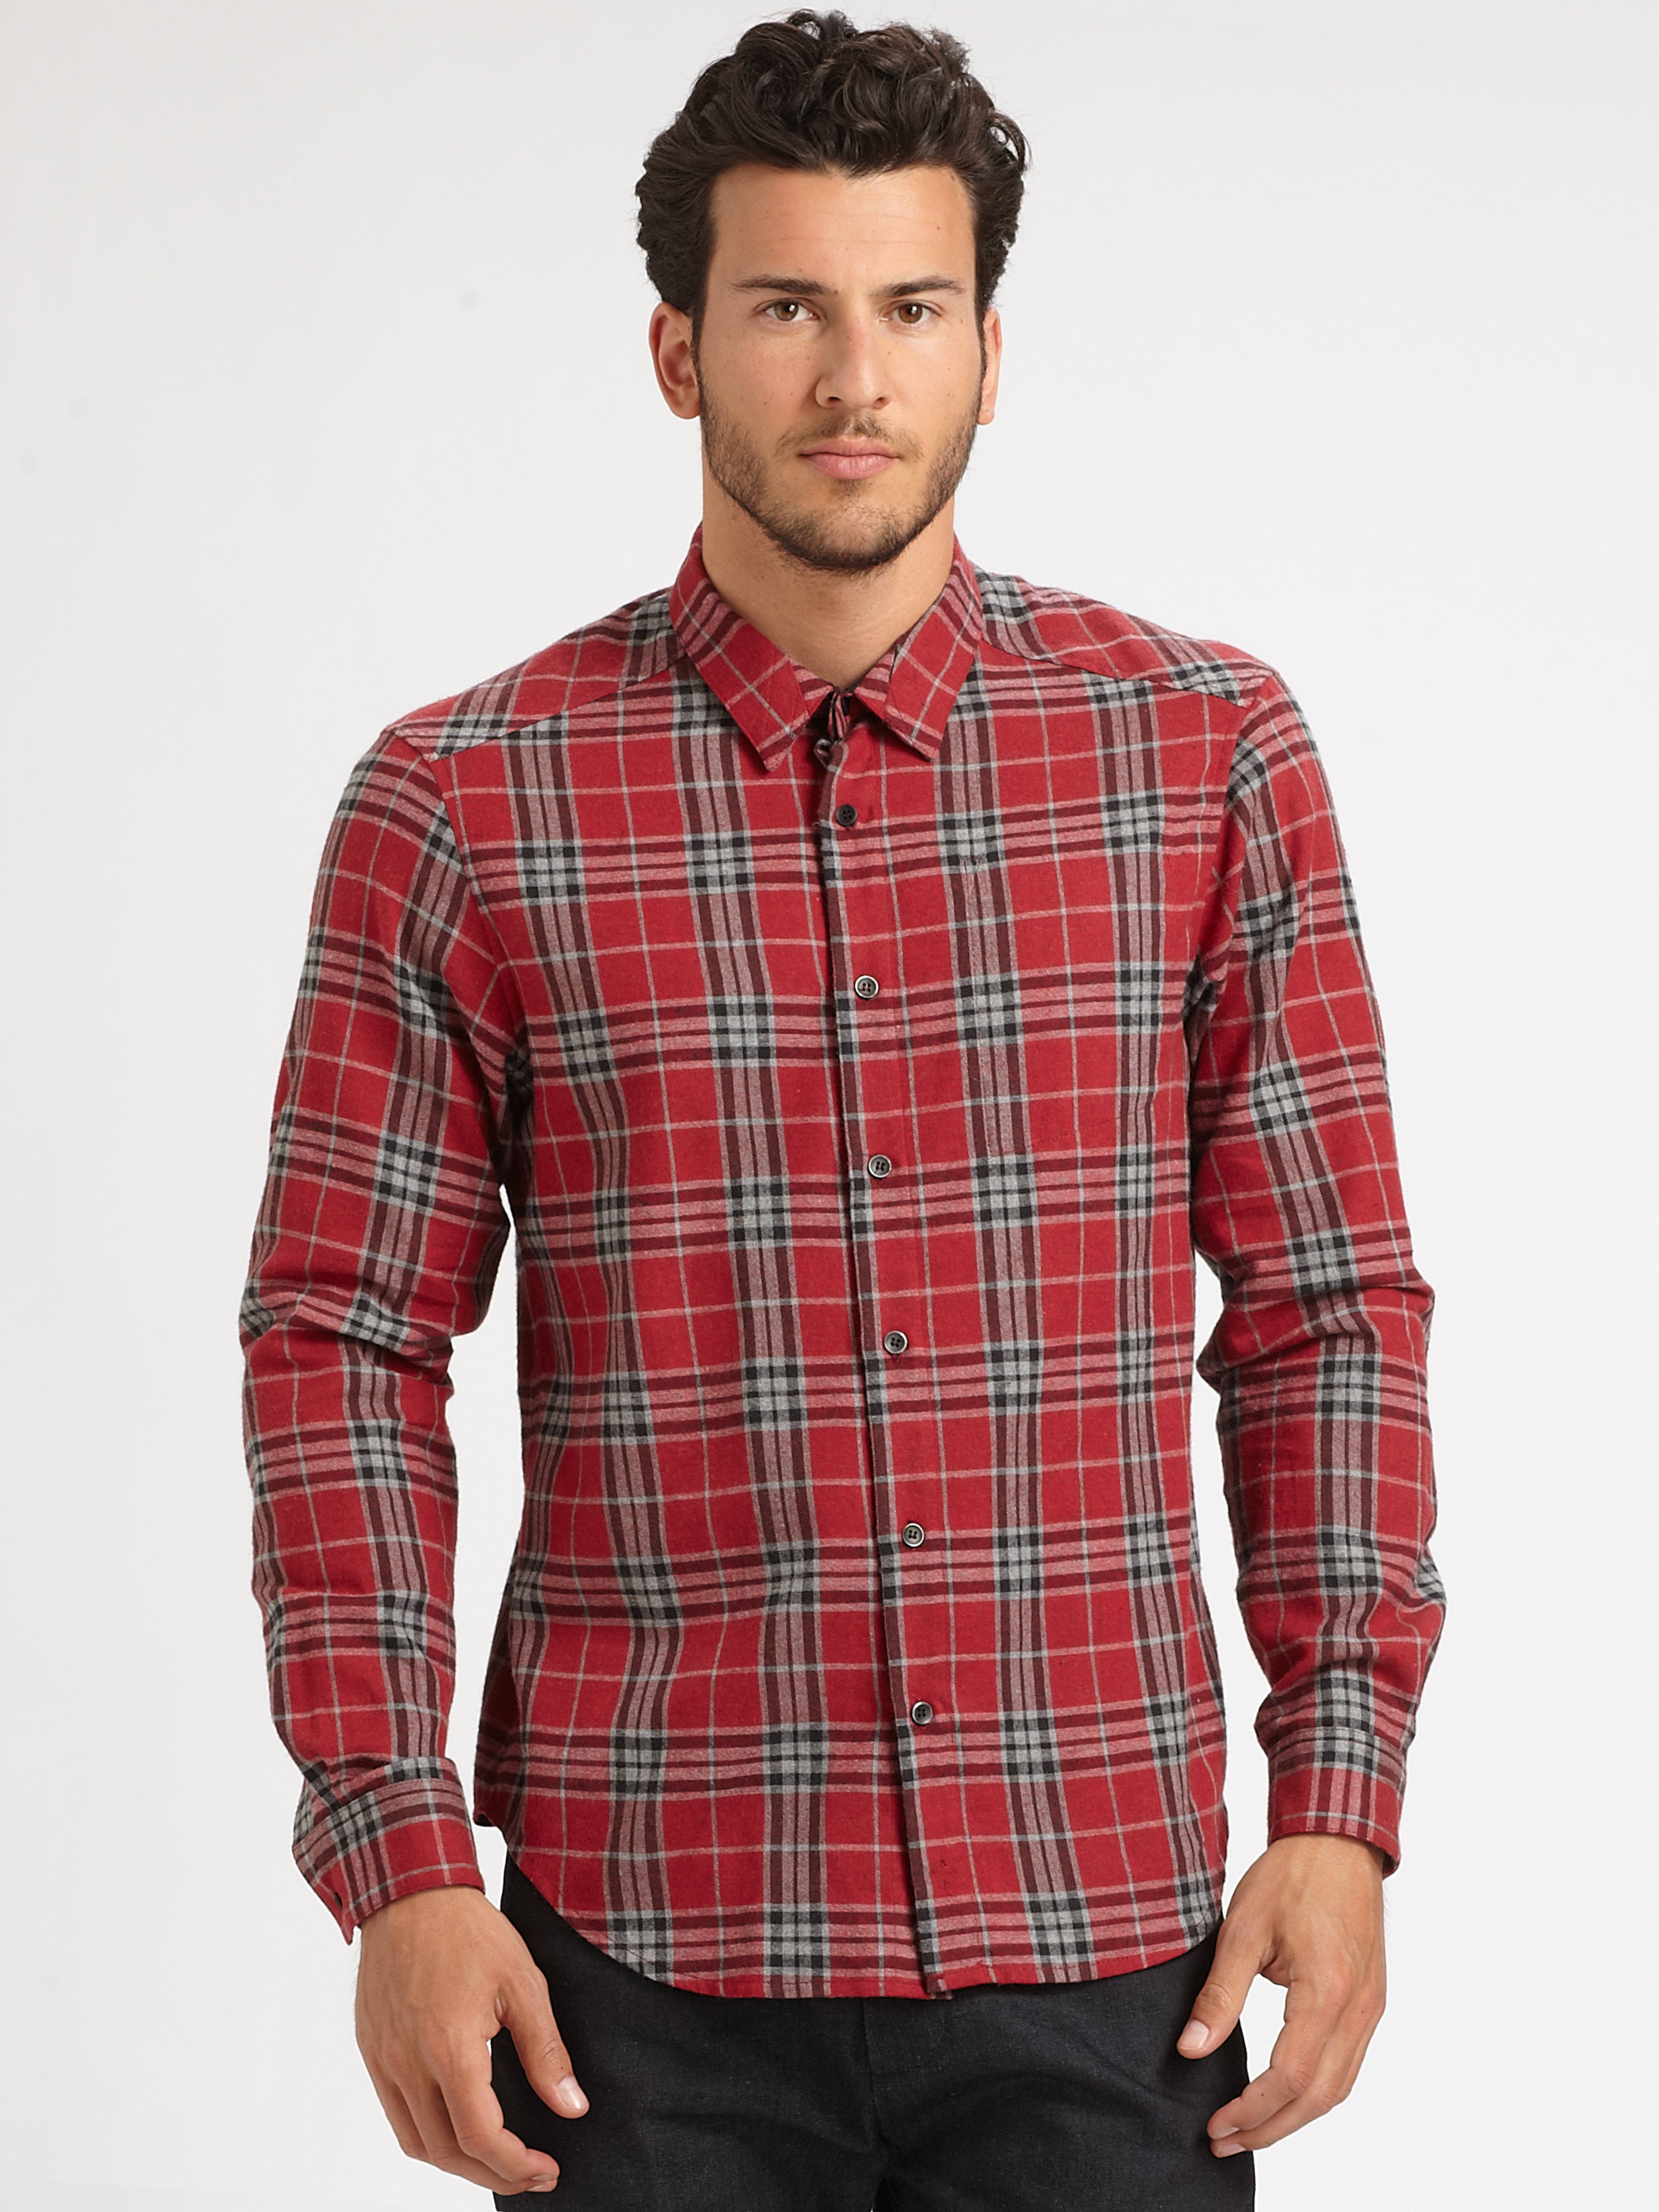 red plaid shirt essay Red plaid shirt essays: over 180,000 red plaid shirt essays, red plaid shirt term papers, red plaid shirt research paper, book reports 184 990 essays, term and research papers available for unlimited access.